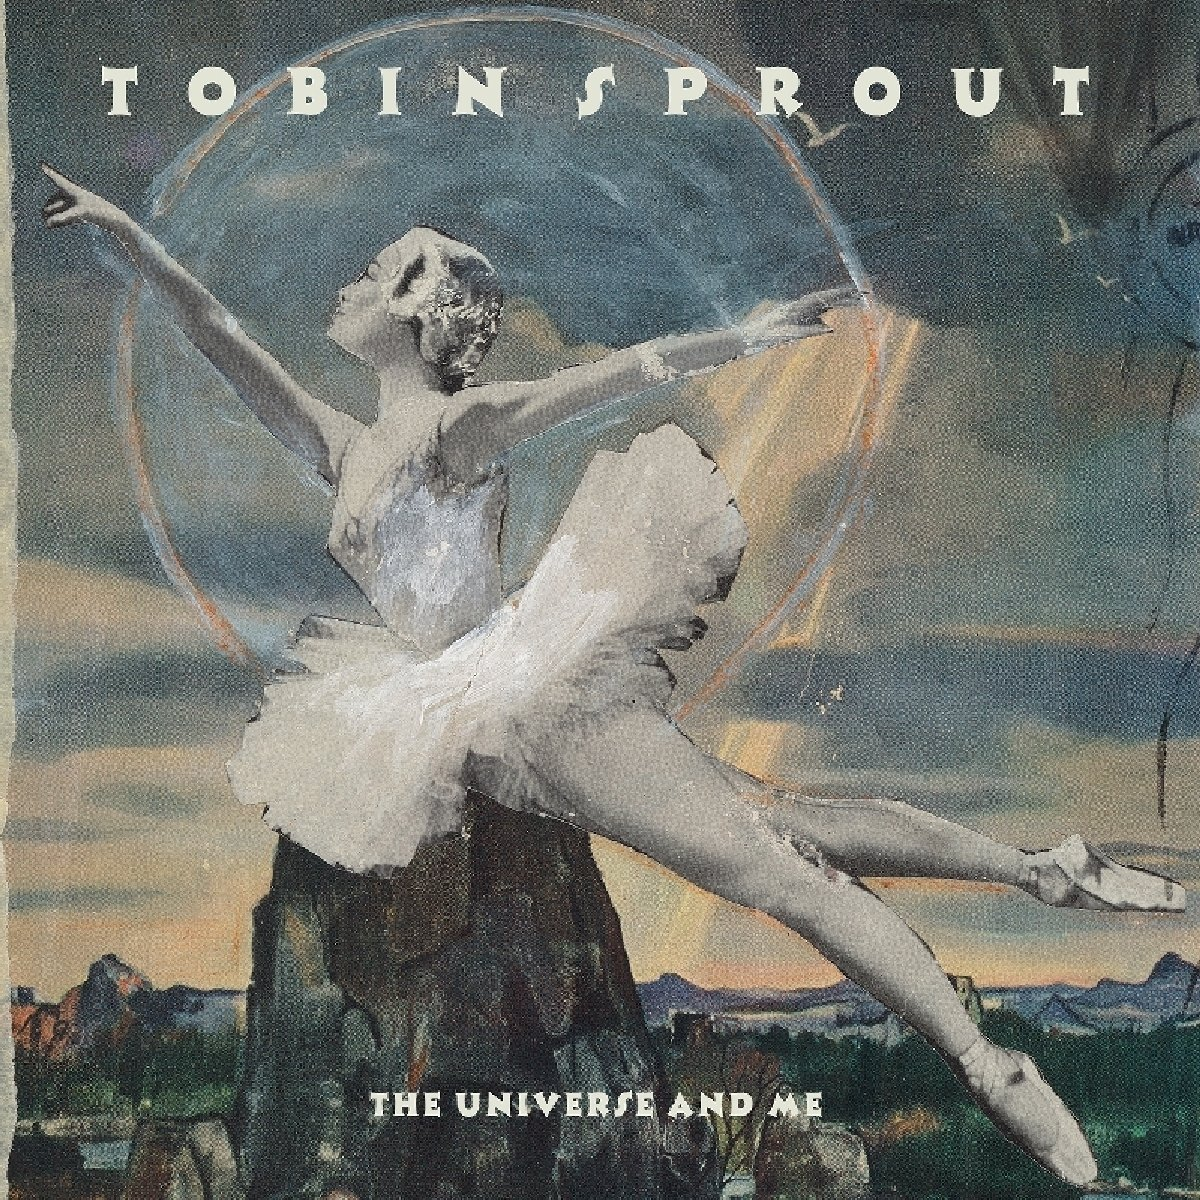 Tobin Sprout: The Universe And Me [Album Review]